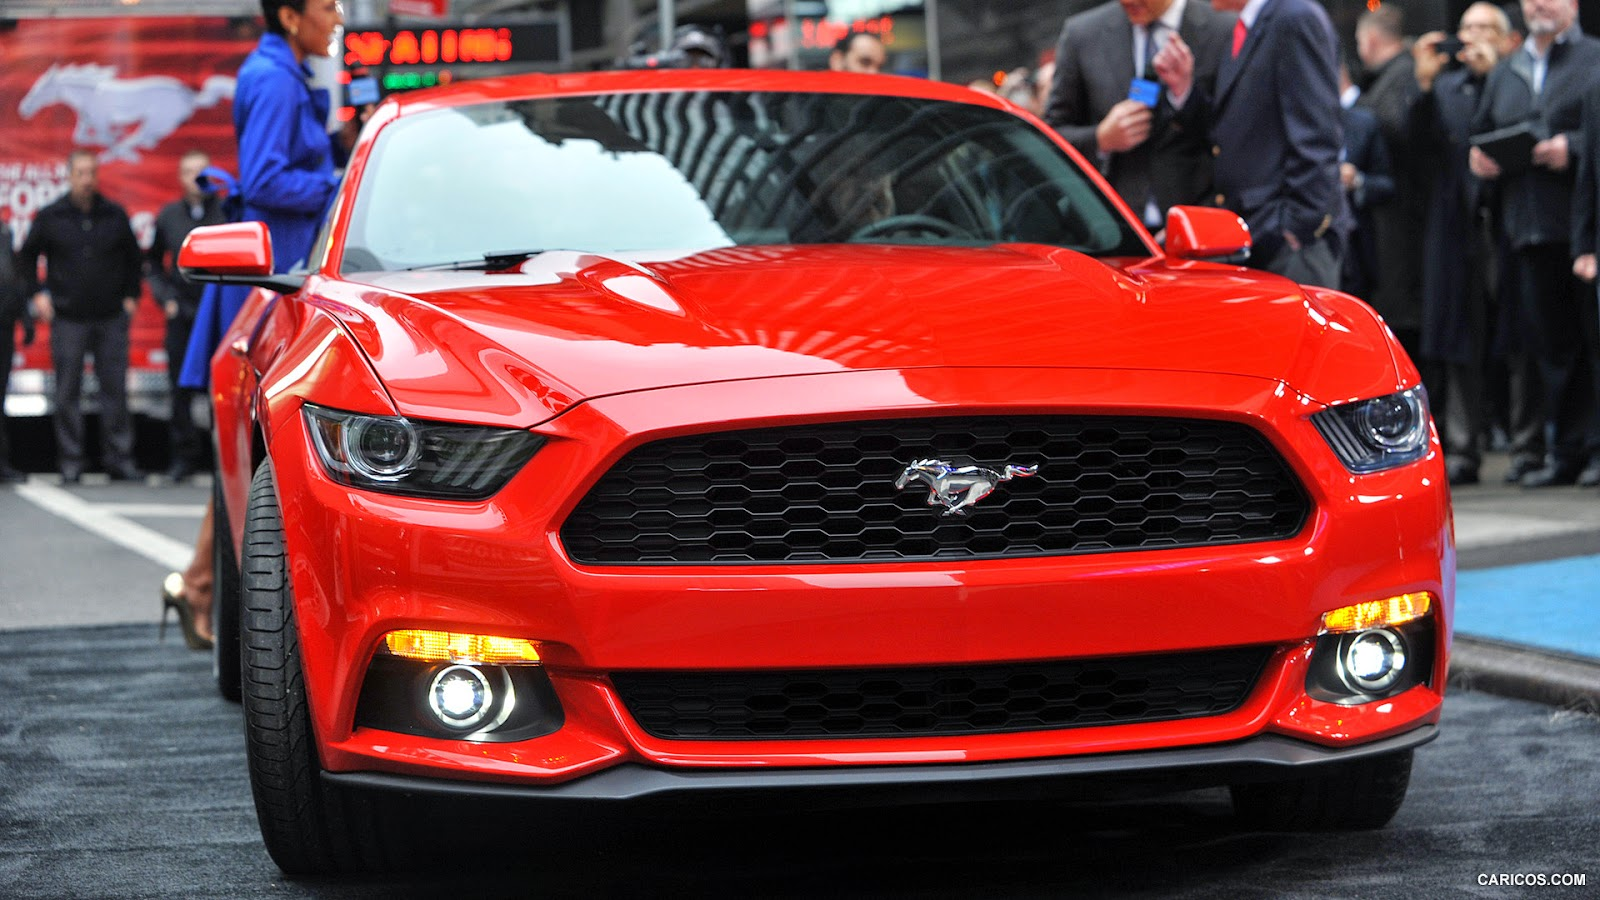 Ford Vehicles Nominated for 2015 North American Car/Truck of the Year